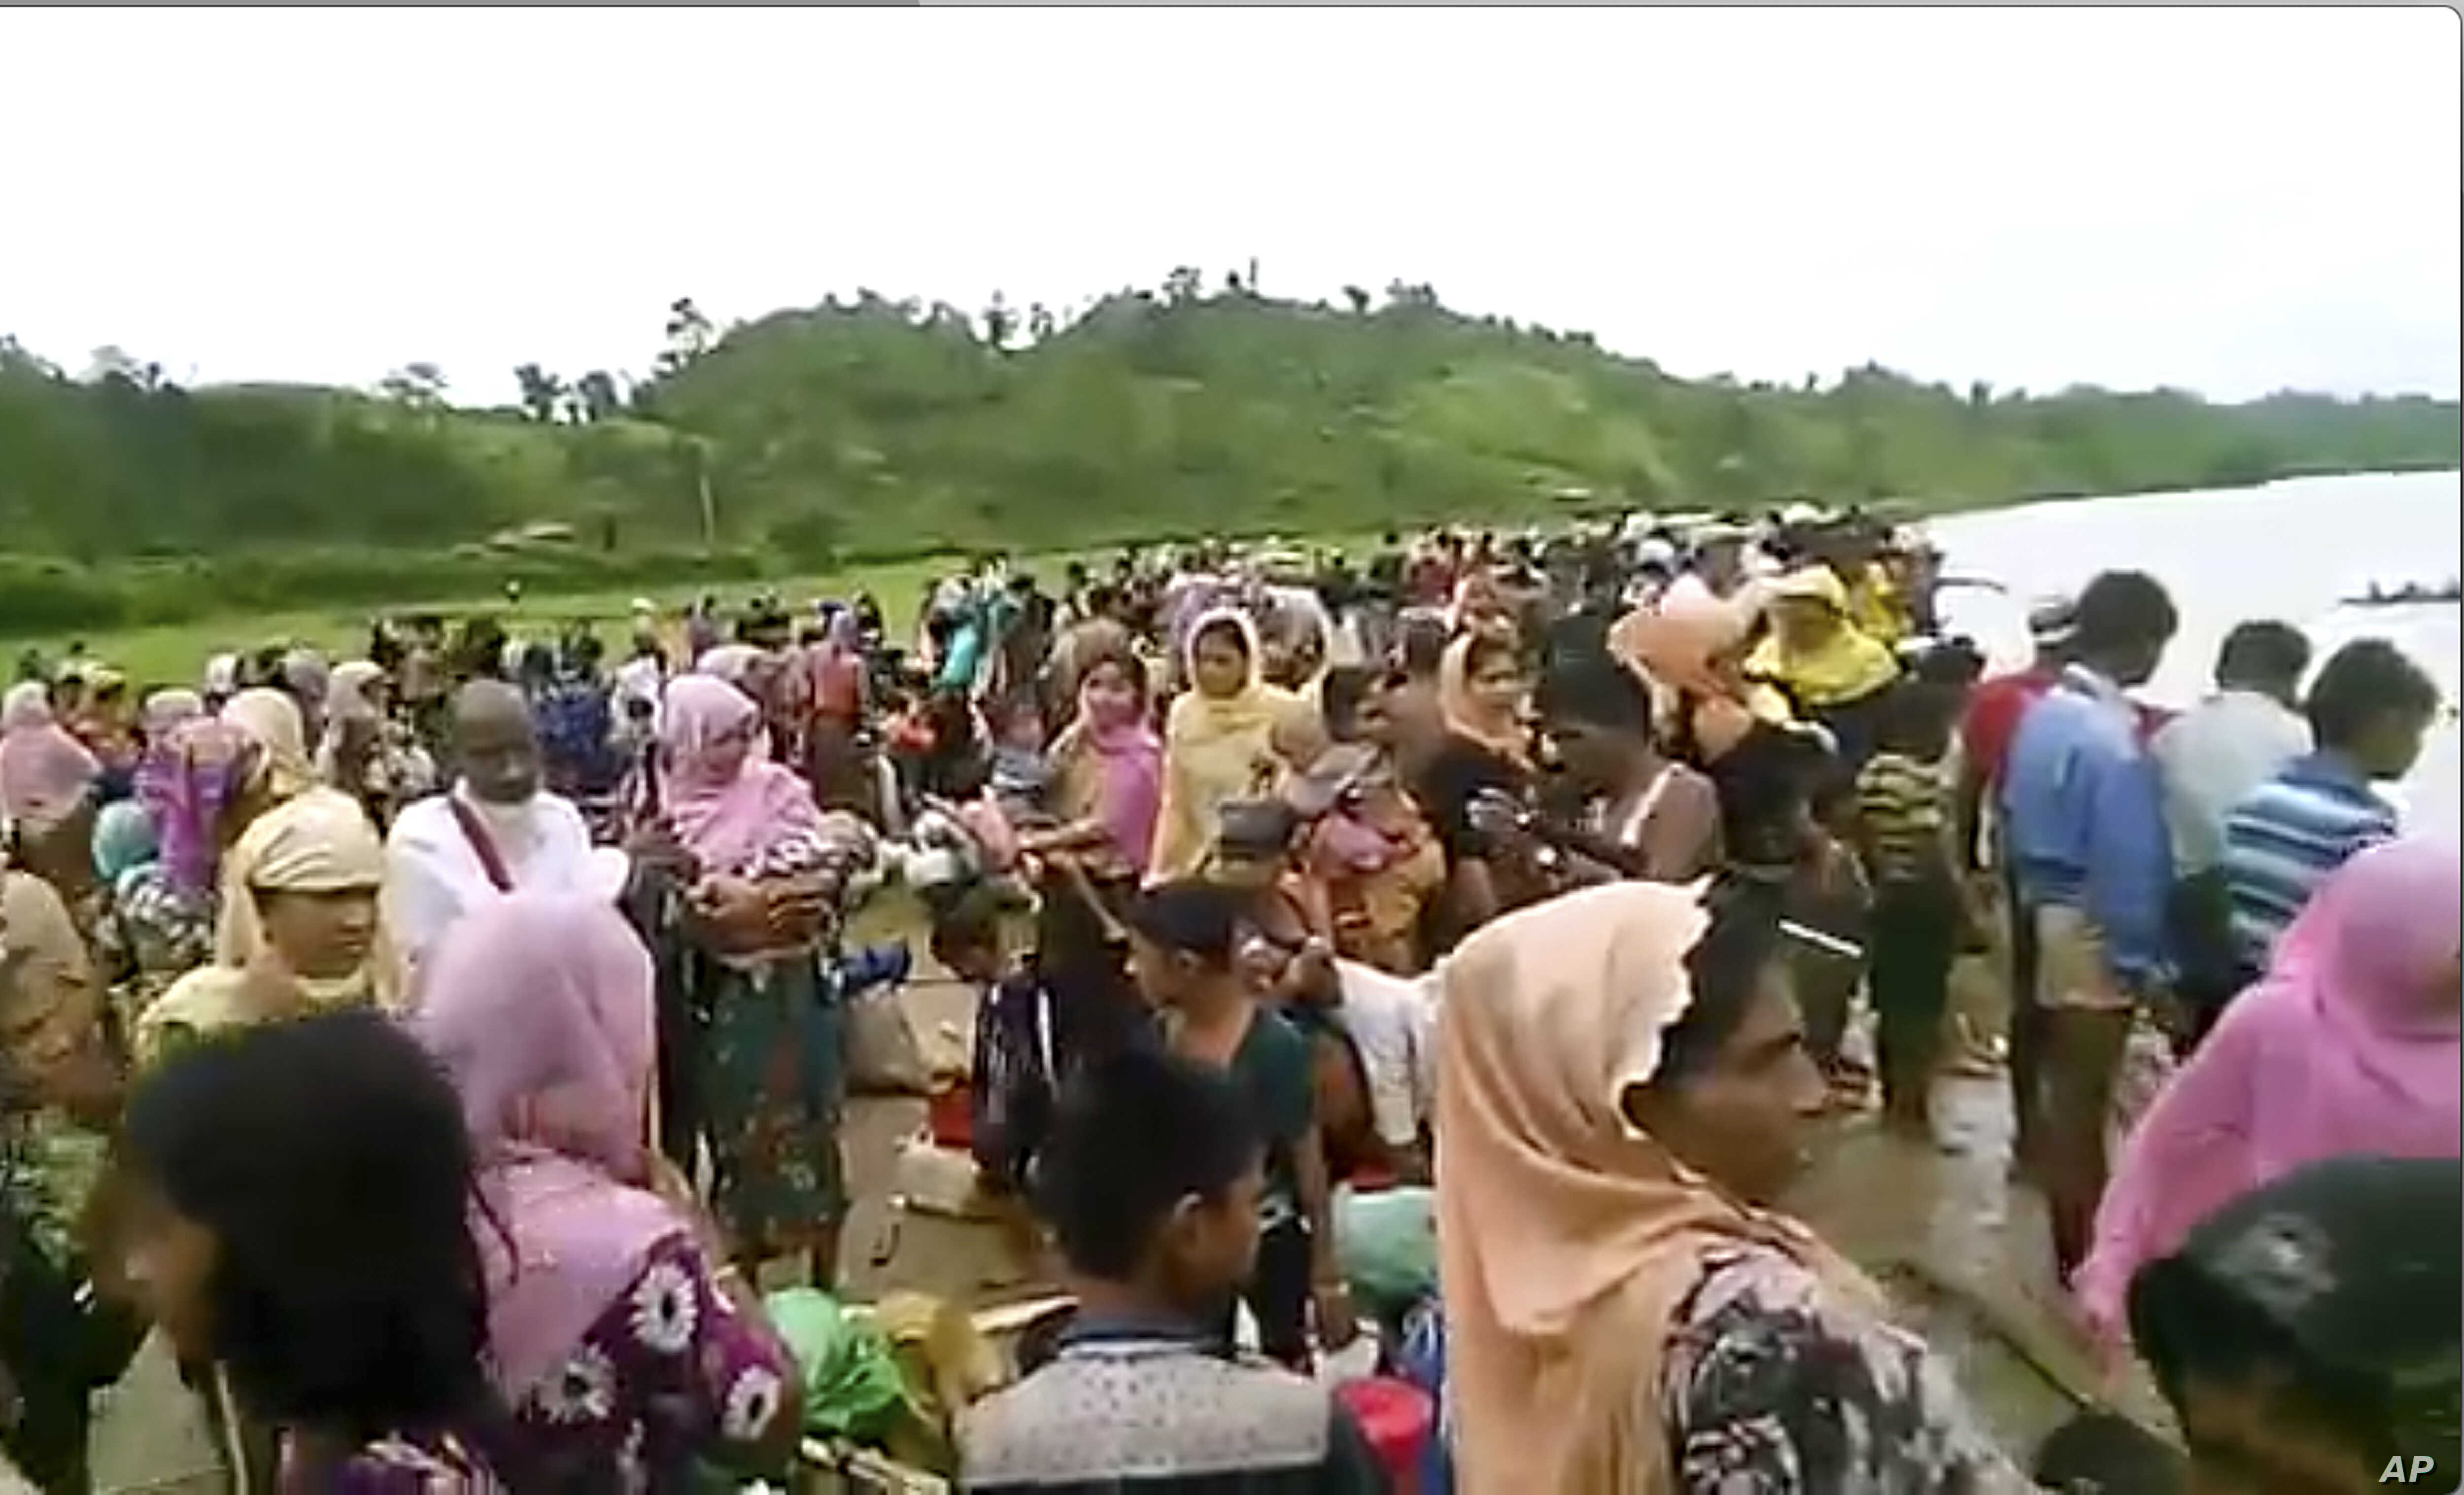 An Oct. 5, 2017 image taken from a video released by Arakan Rohingya National Organization shows villagers preparing to cross a river towards  the Maungdaw township in the Rakhine state that borders Bangladesh.